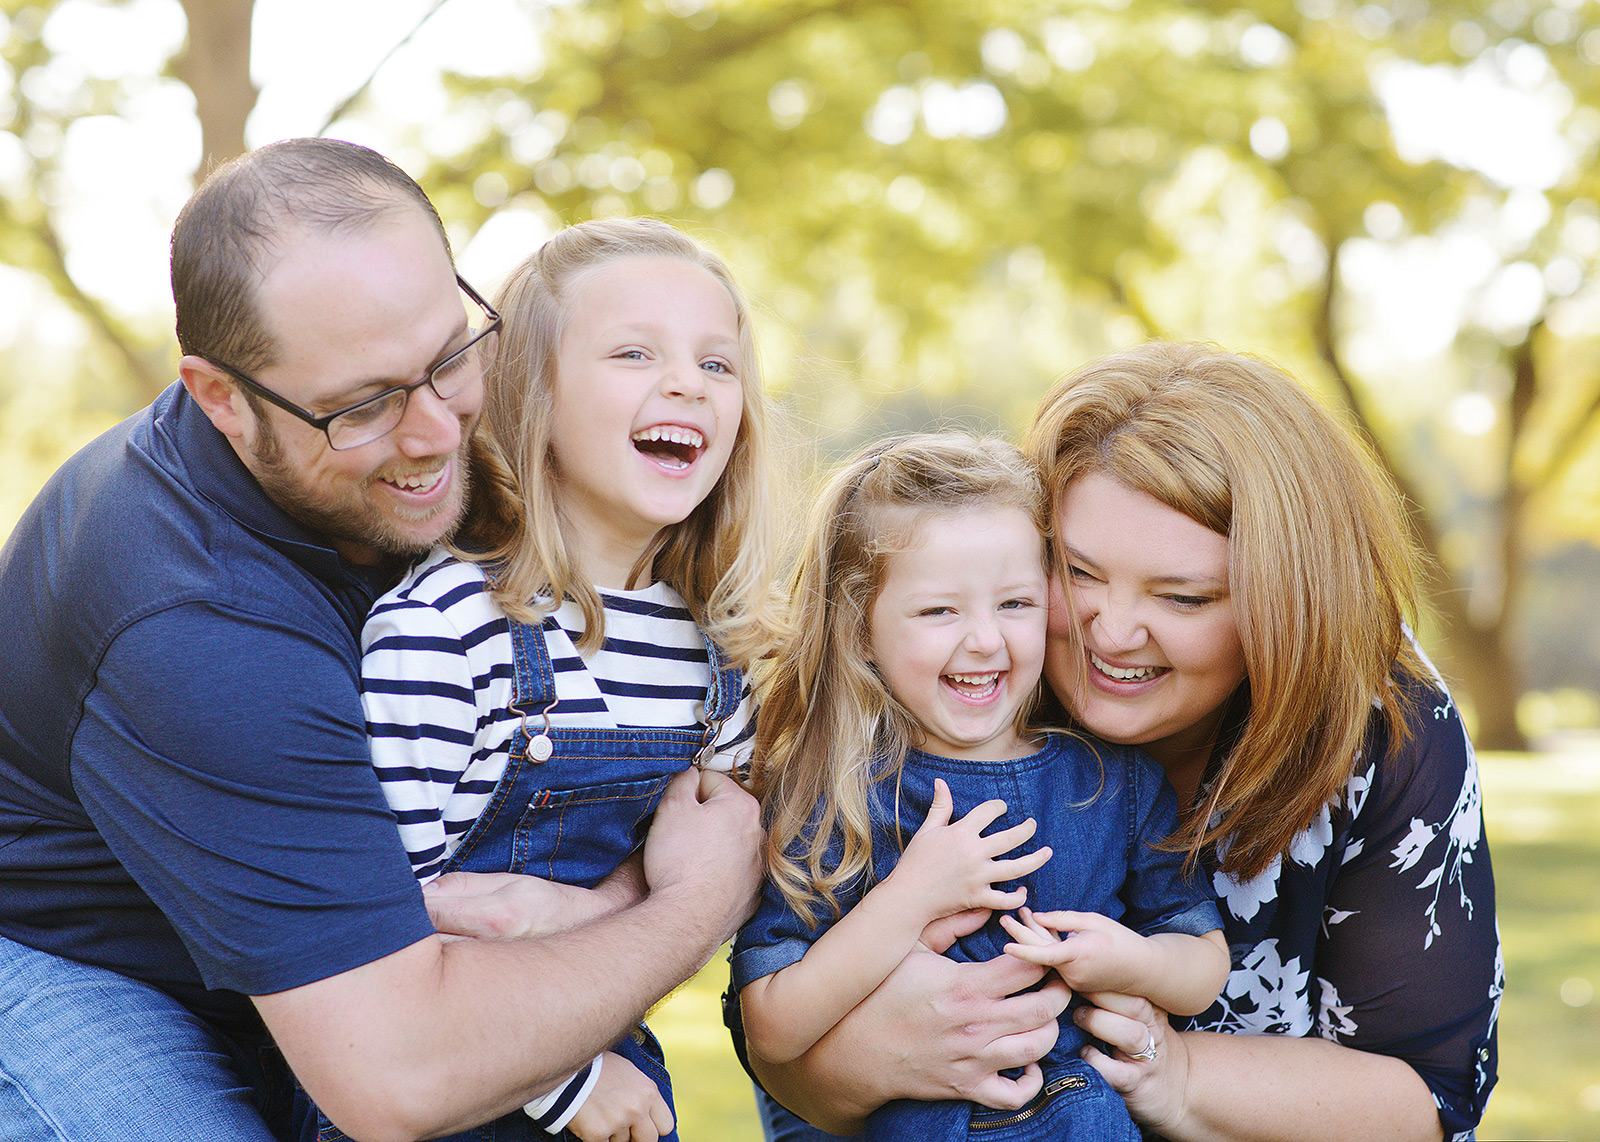 william land park family portraits with tickles for fall pictures with photographer jill carmel